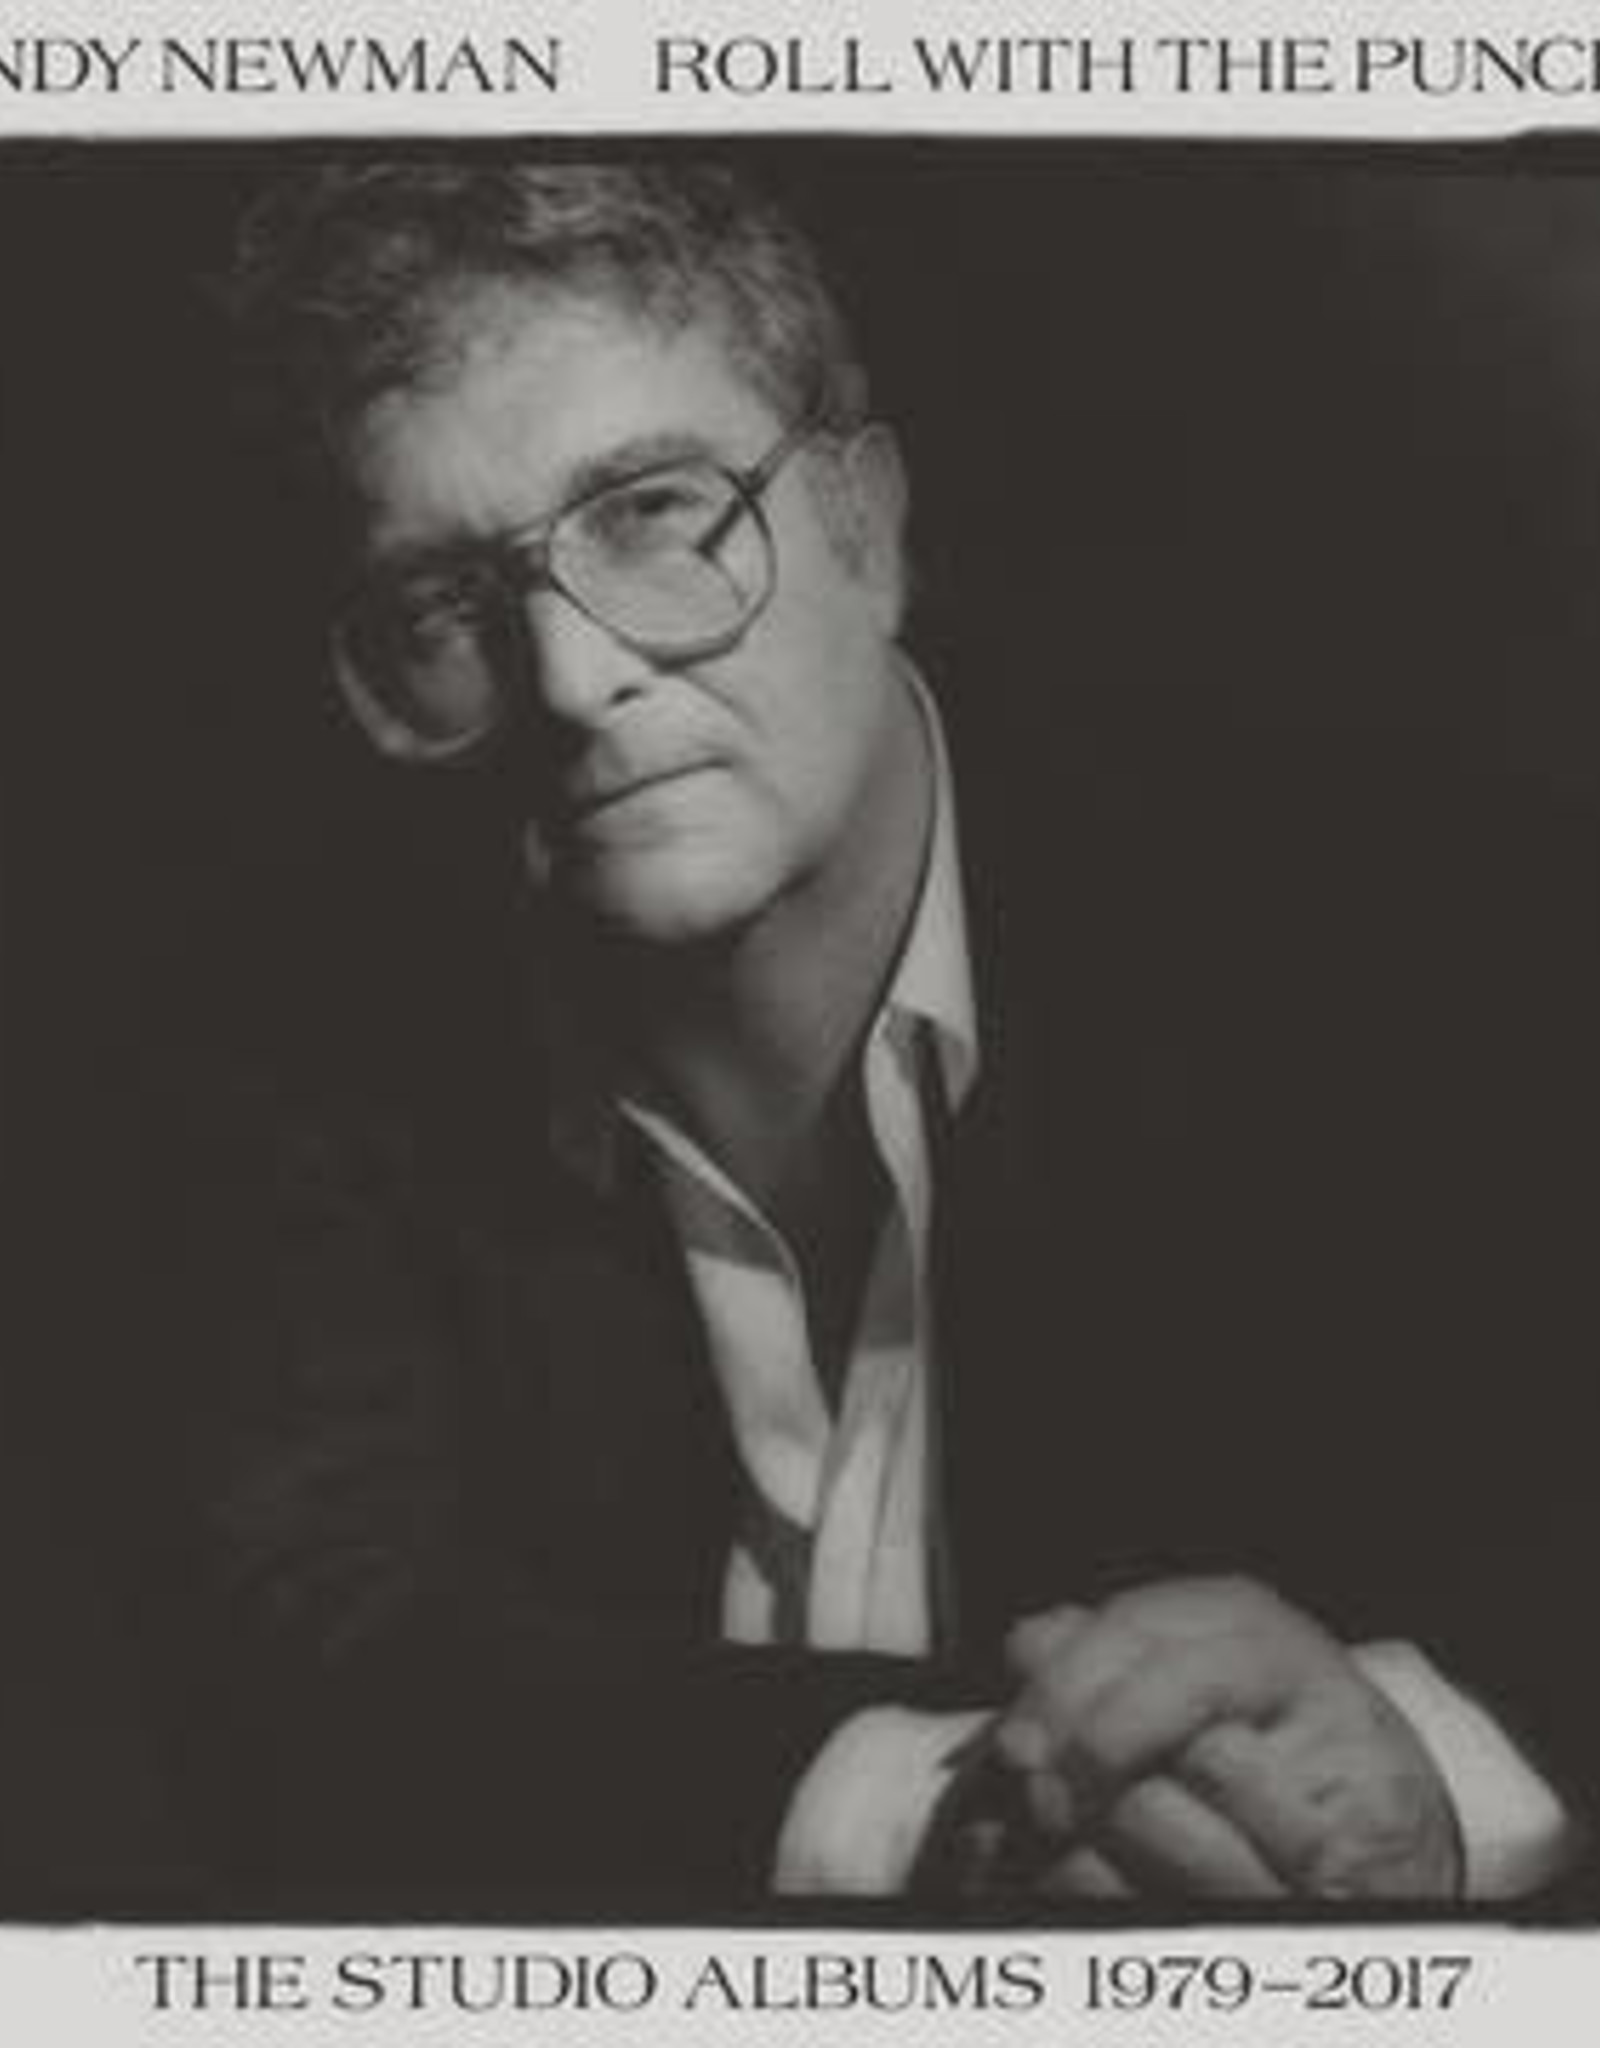 Randy Newman - Roll With The Punches:The Studio Albums (1979-2017) (RSD 7/21)